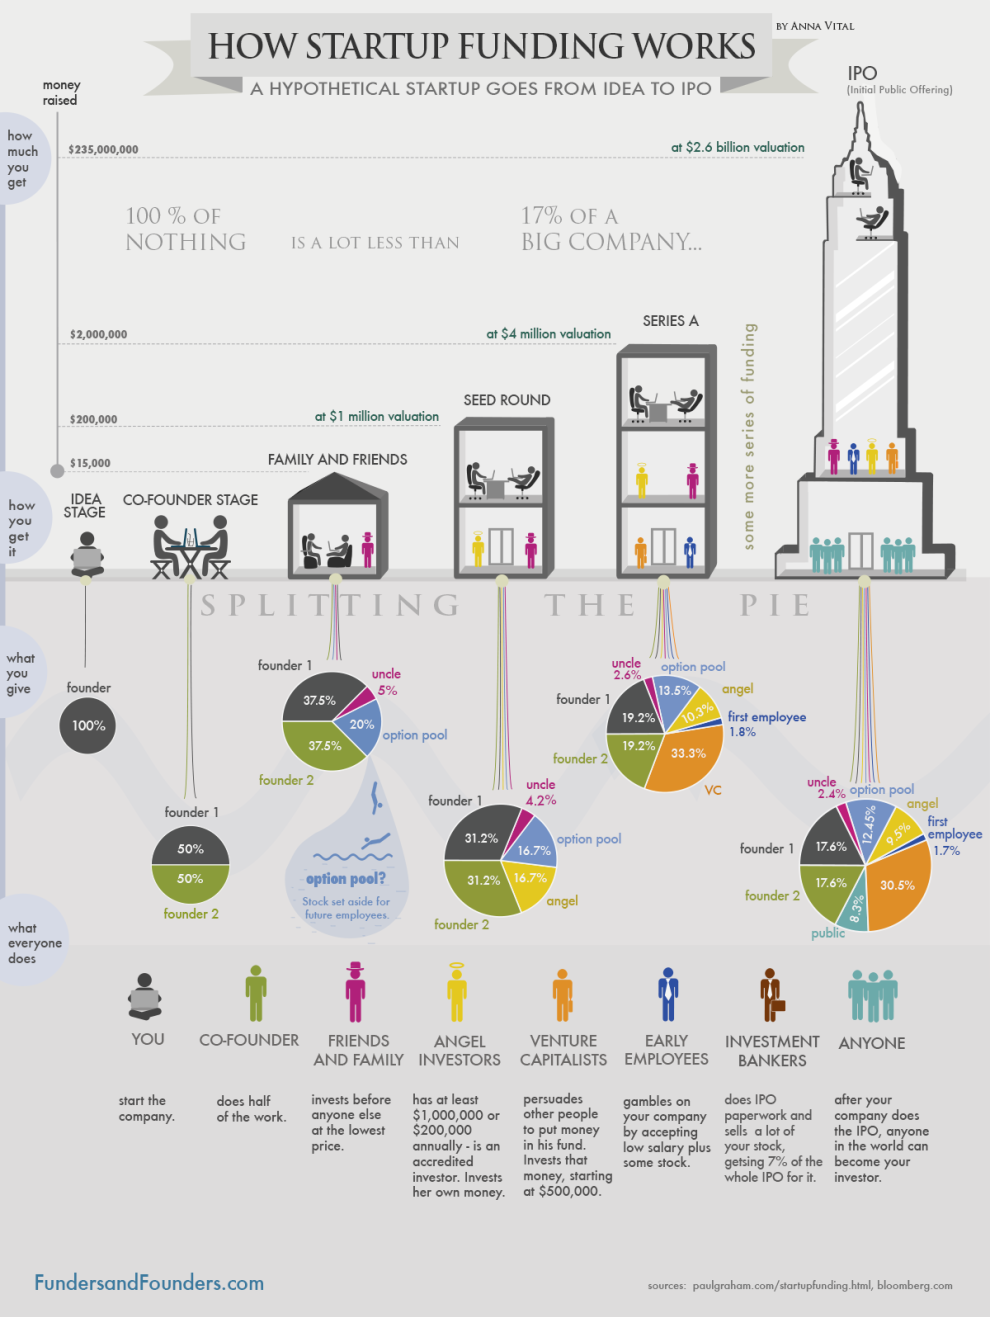 how startup funding works infographic How Start up Funding Works